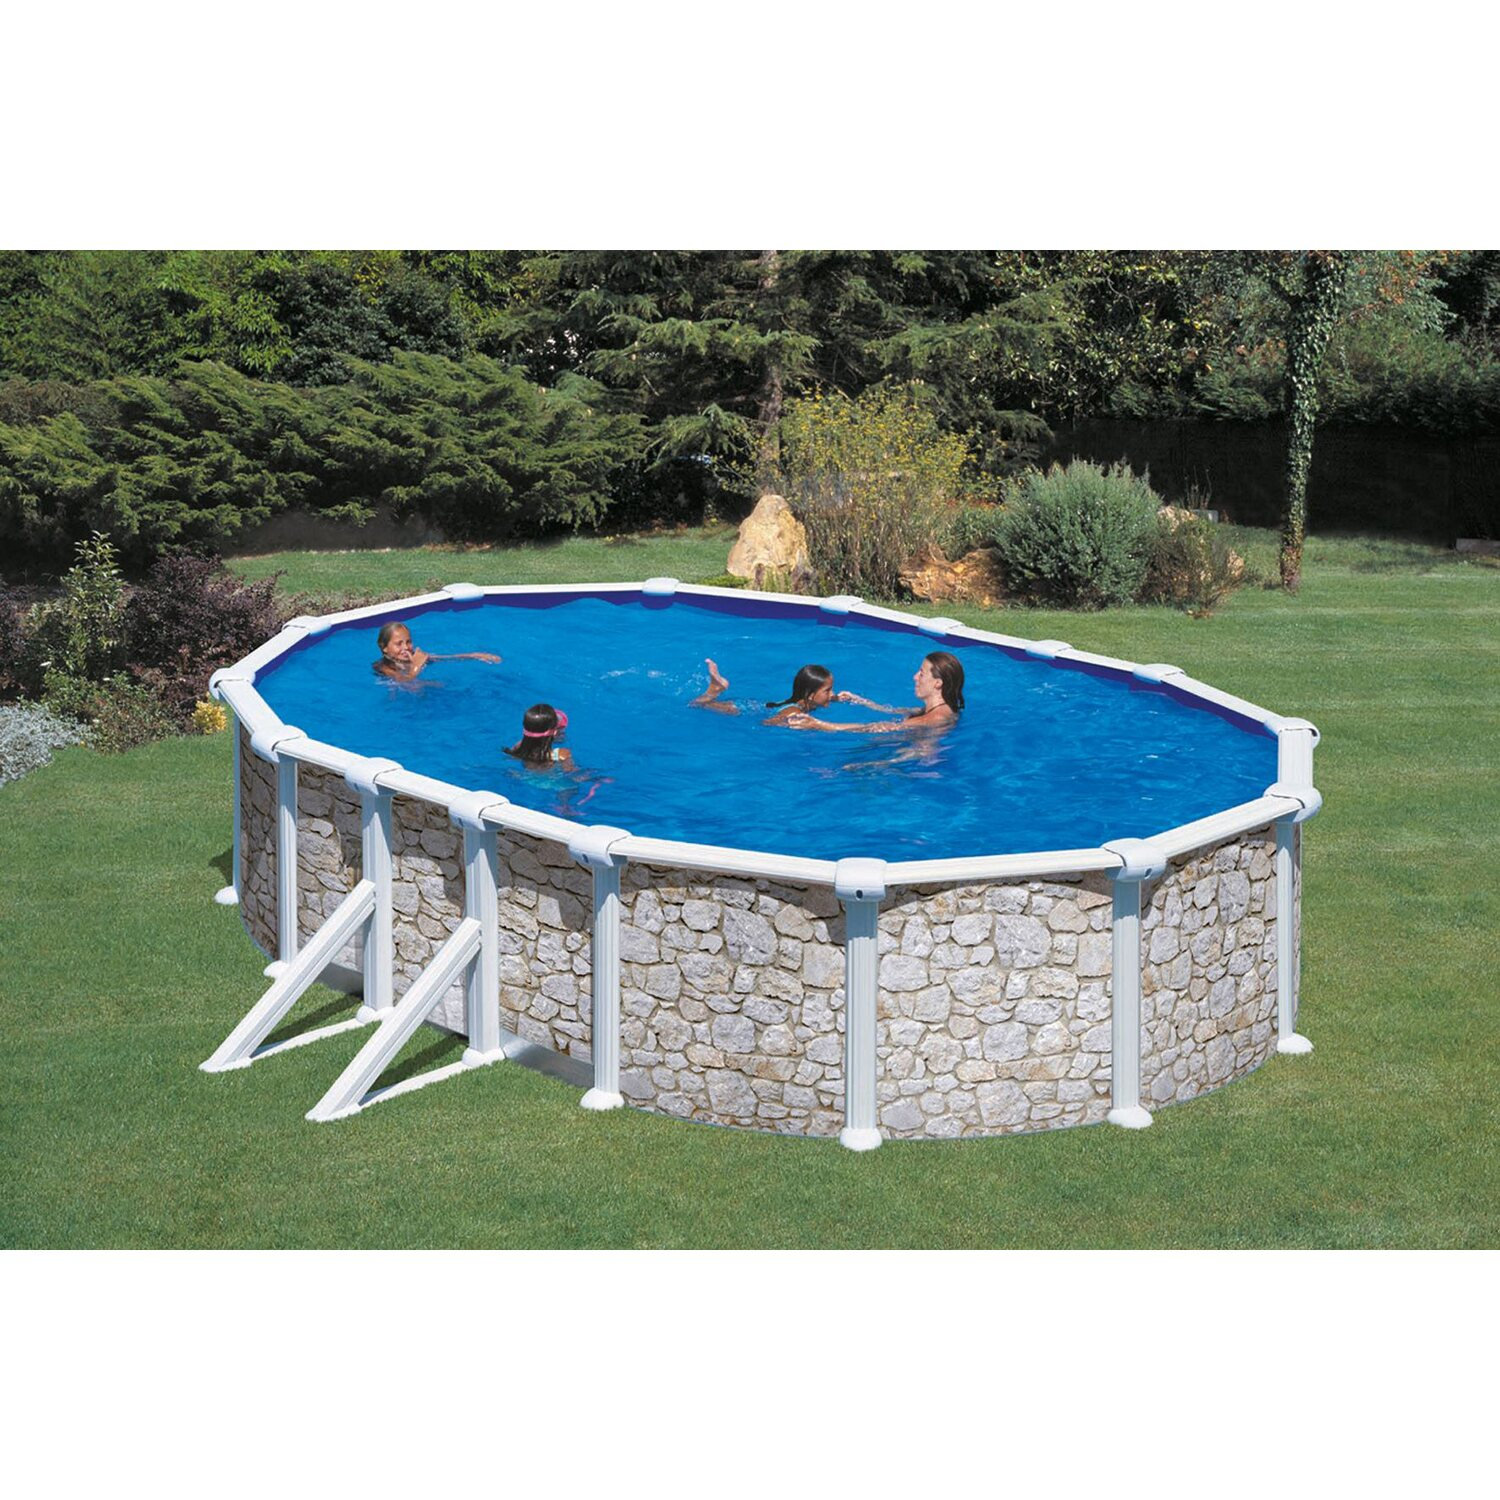 Holzpool set natur santo domingo aufstellbecken oval 533 for Obi holzpool